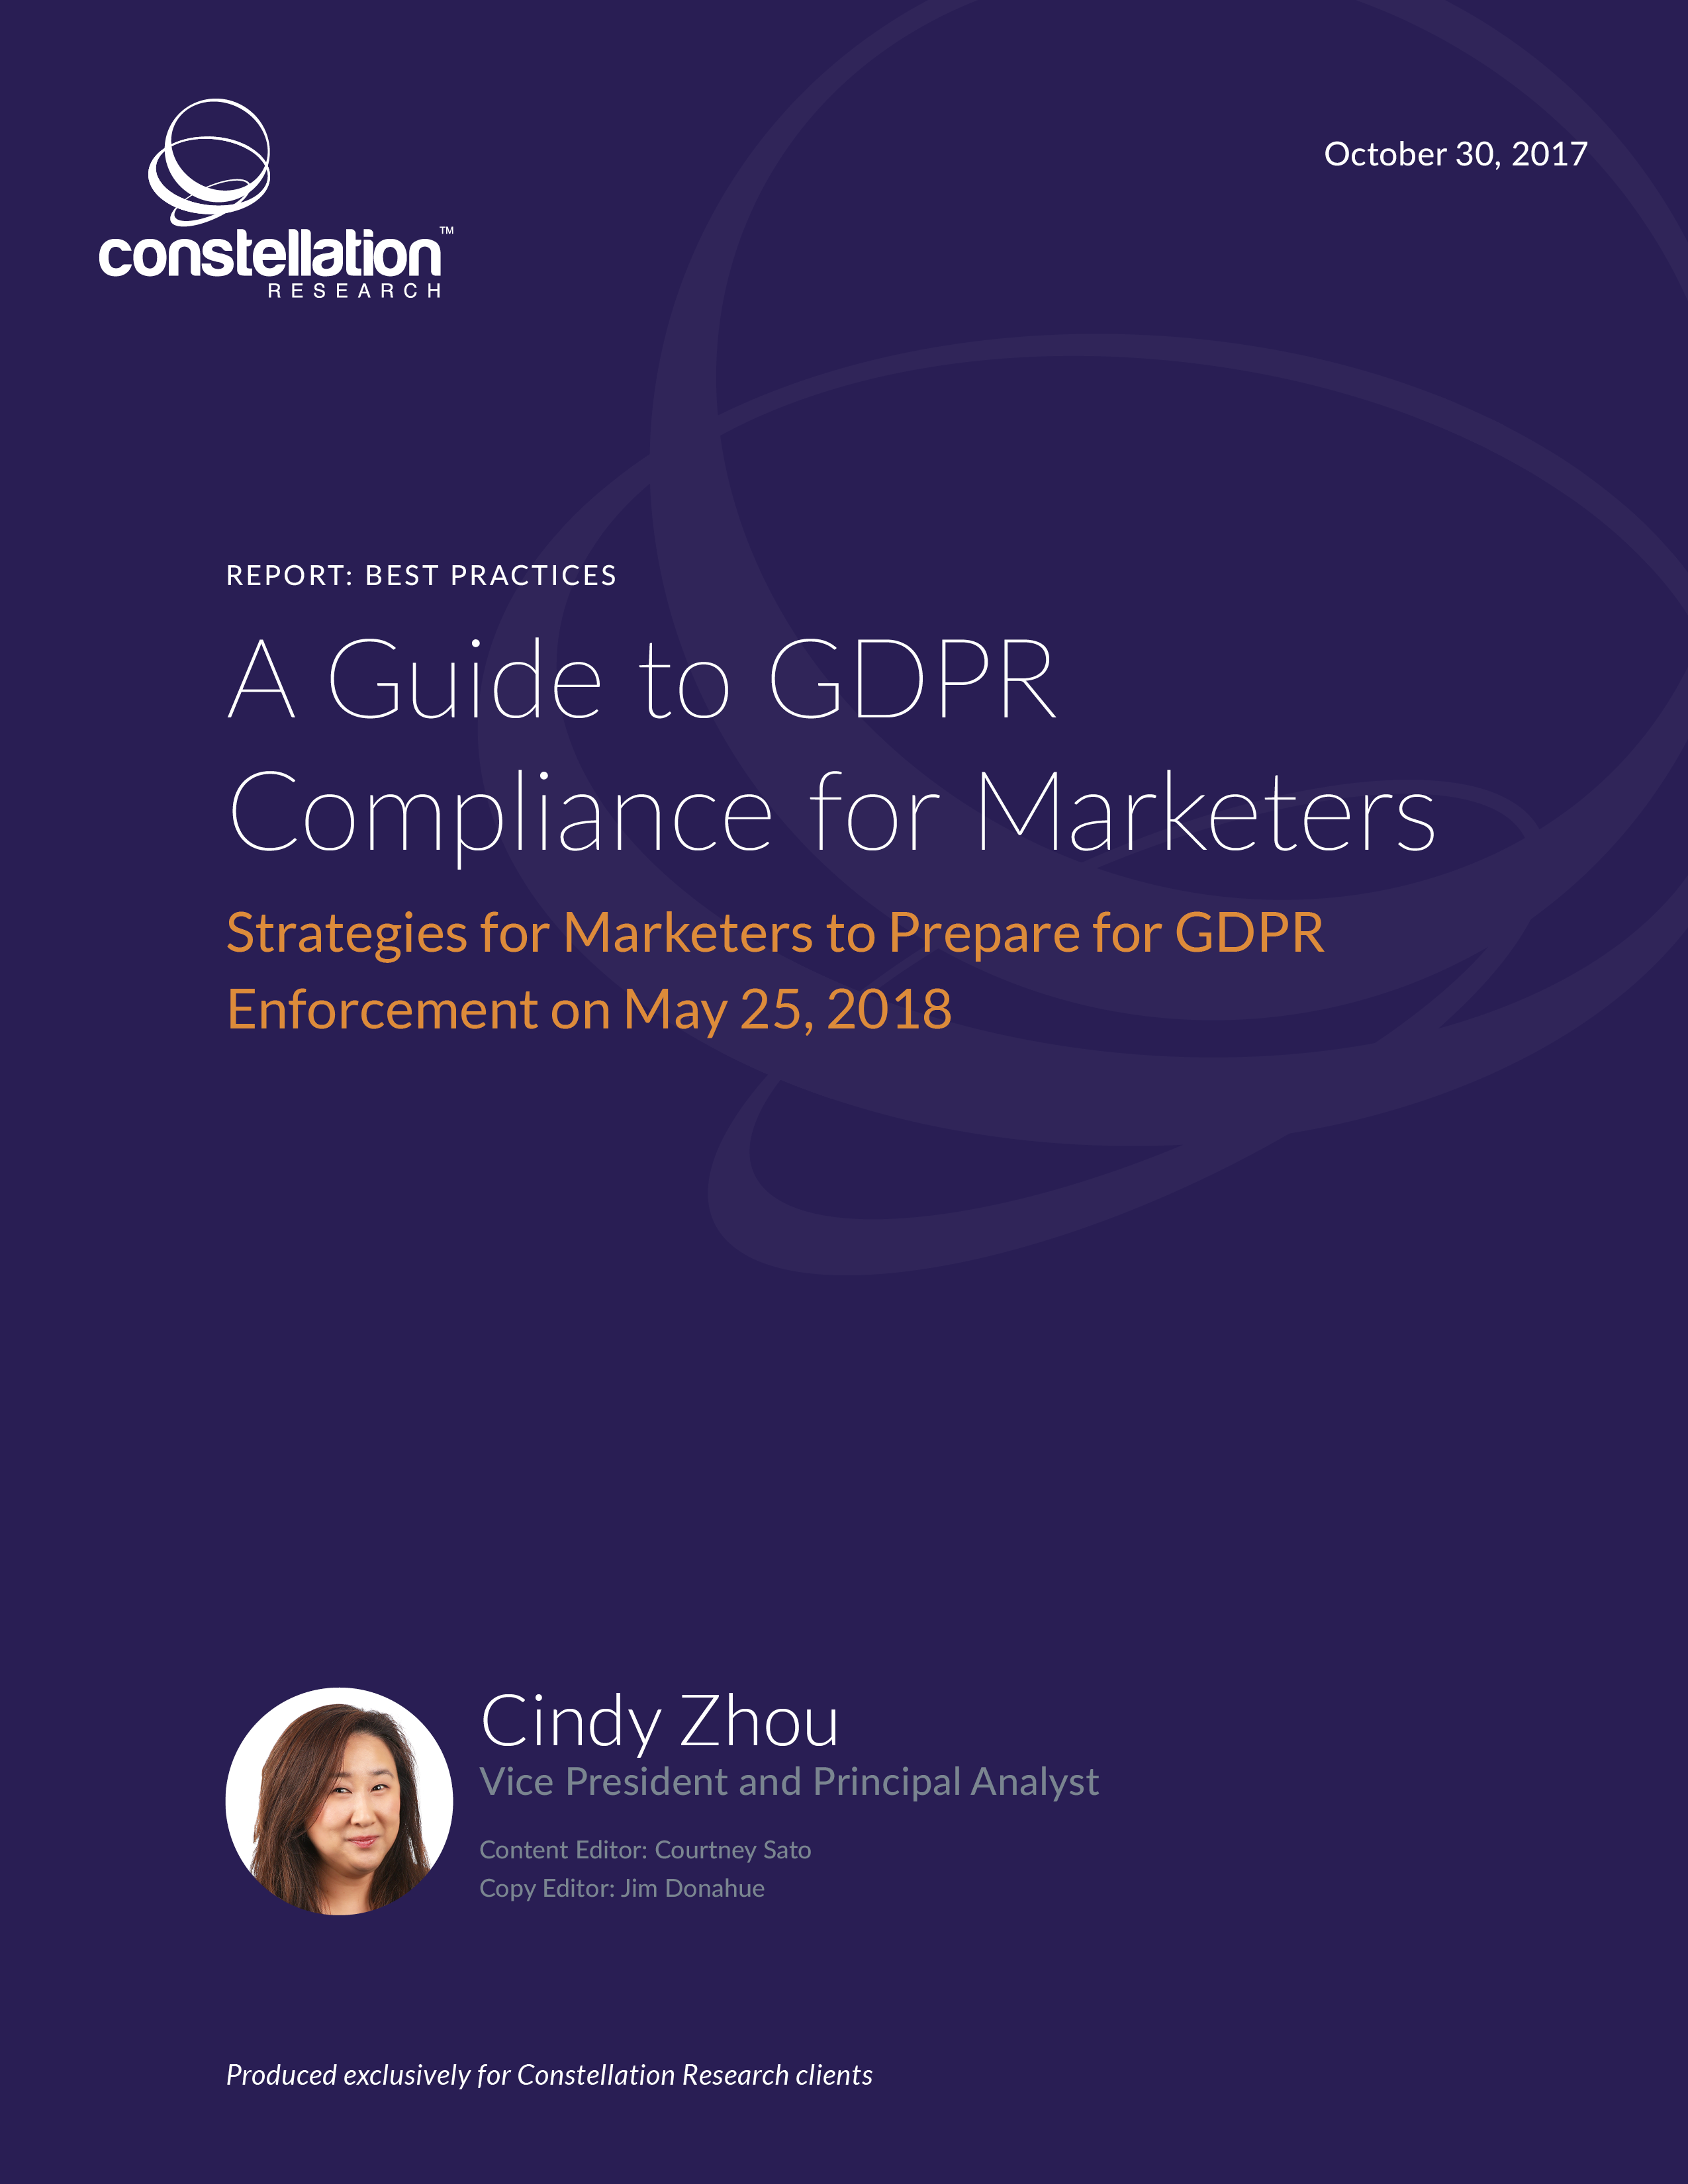 A Guide to GDPR Compliance for Marketers